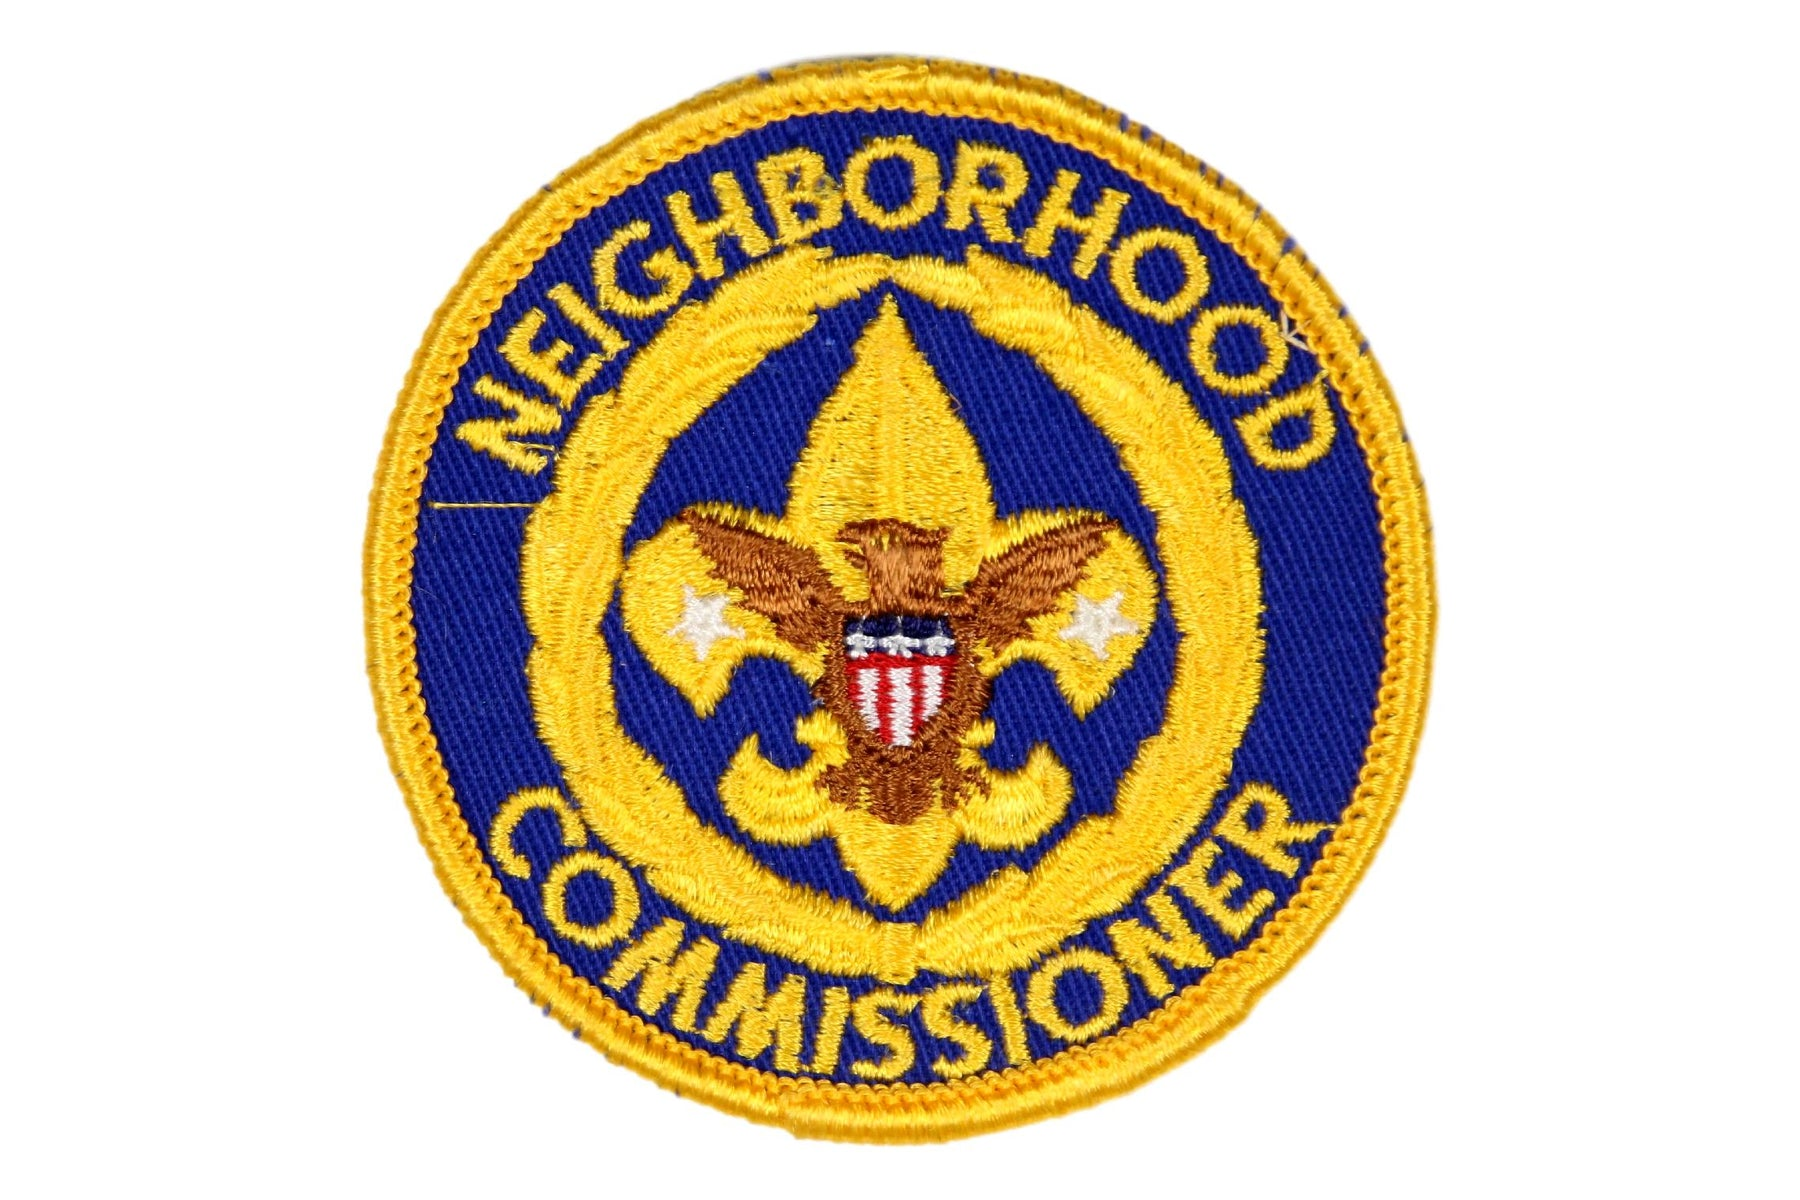 Neighborhood Commissioner Patch 1970 Plastic Back